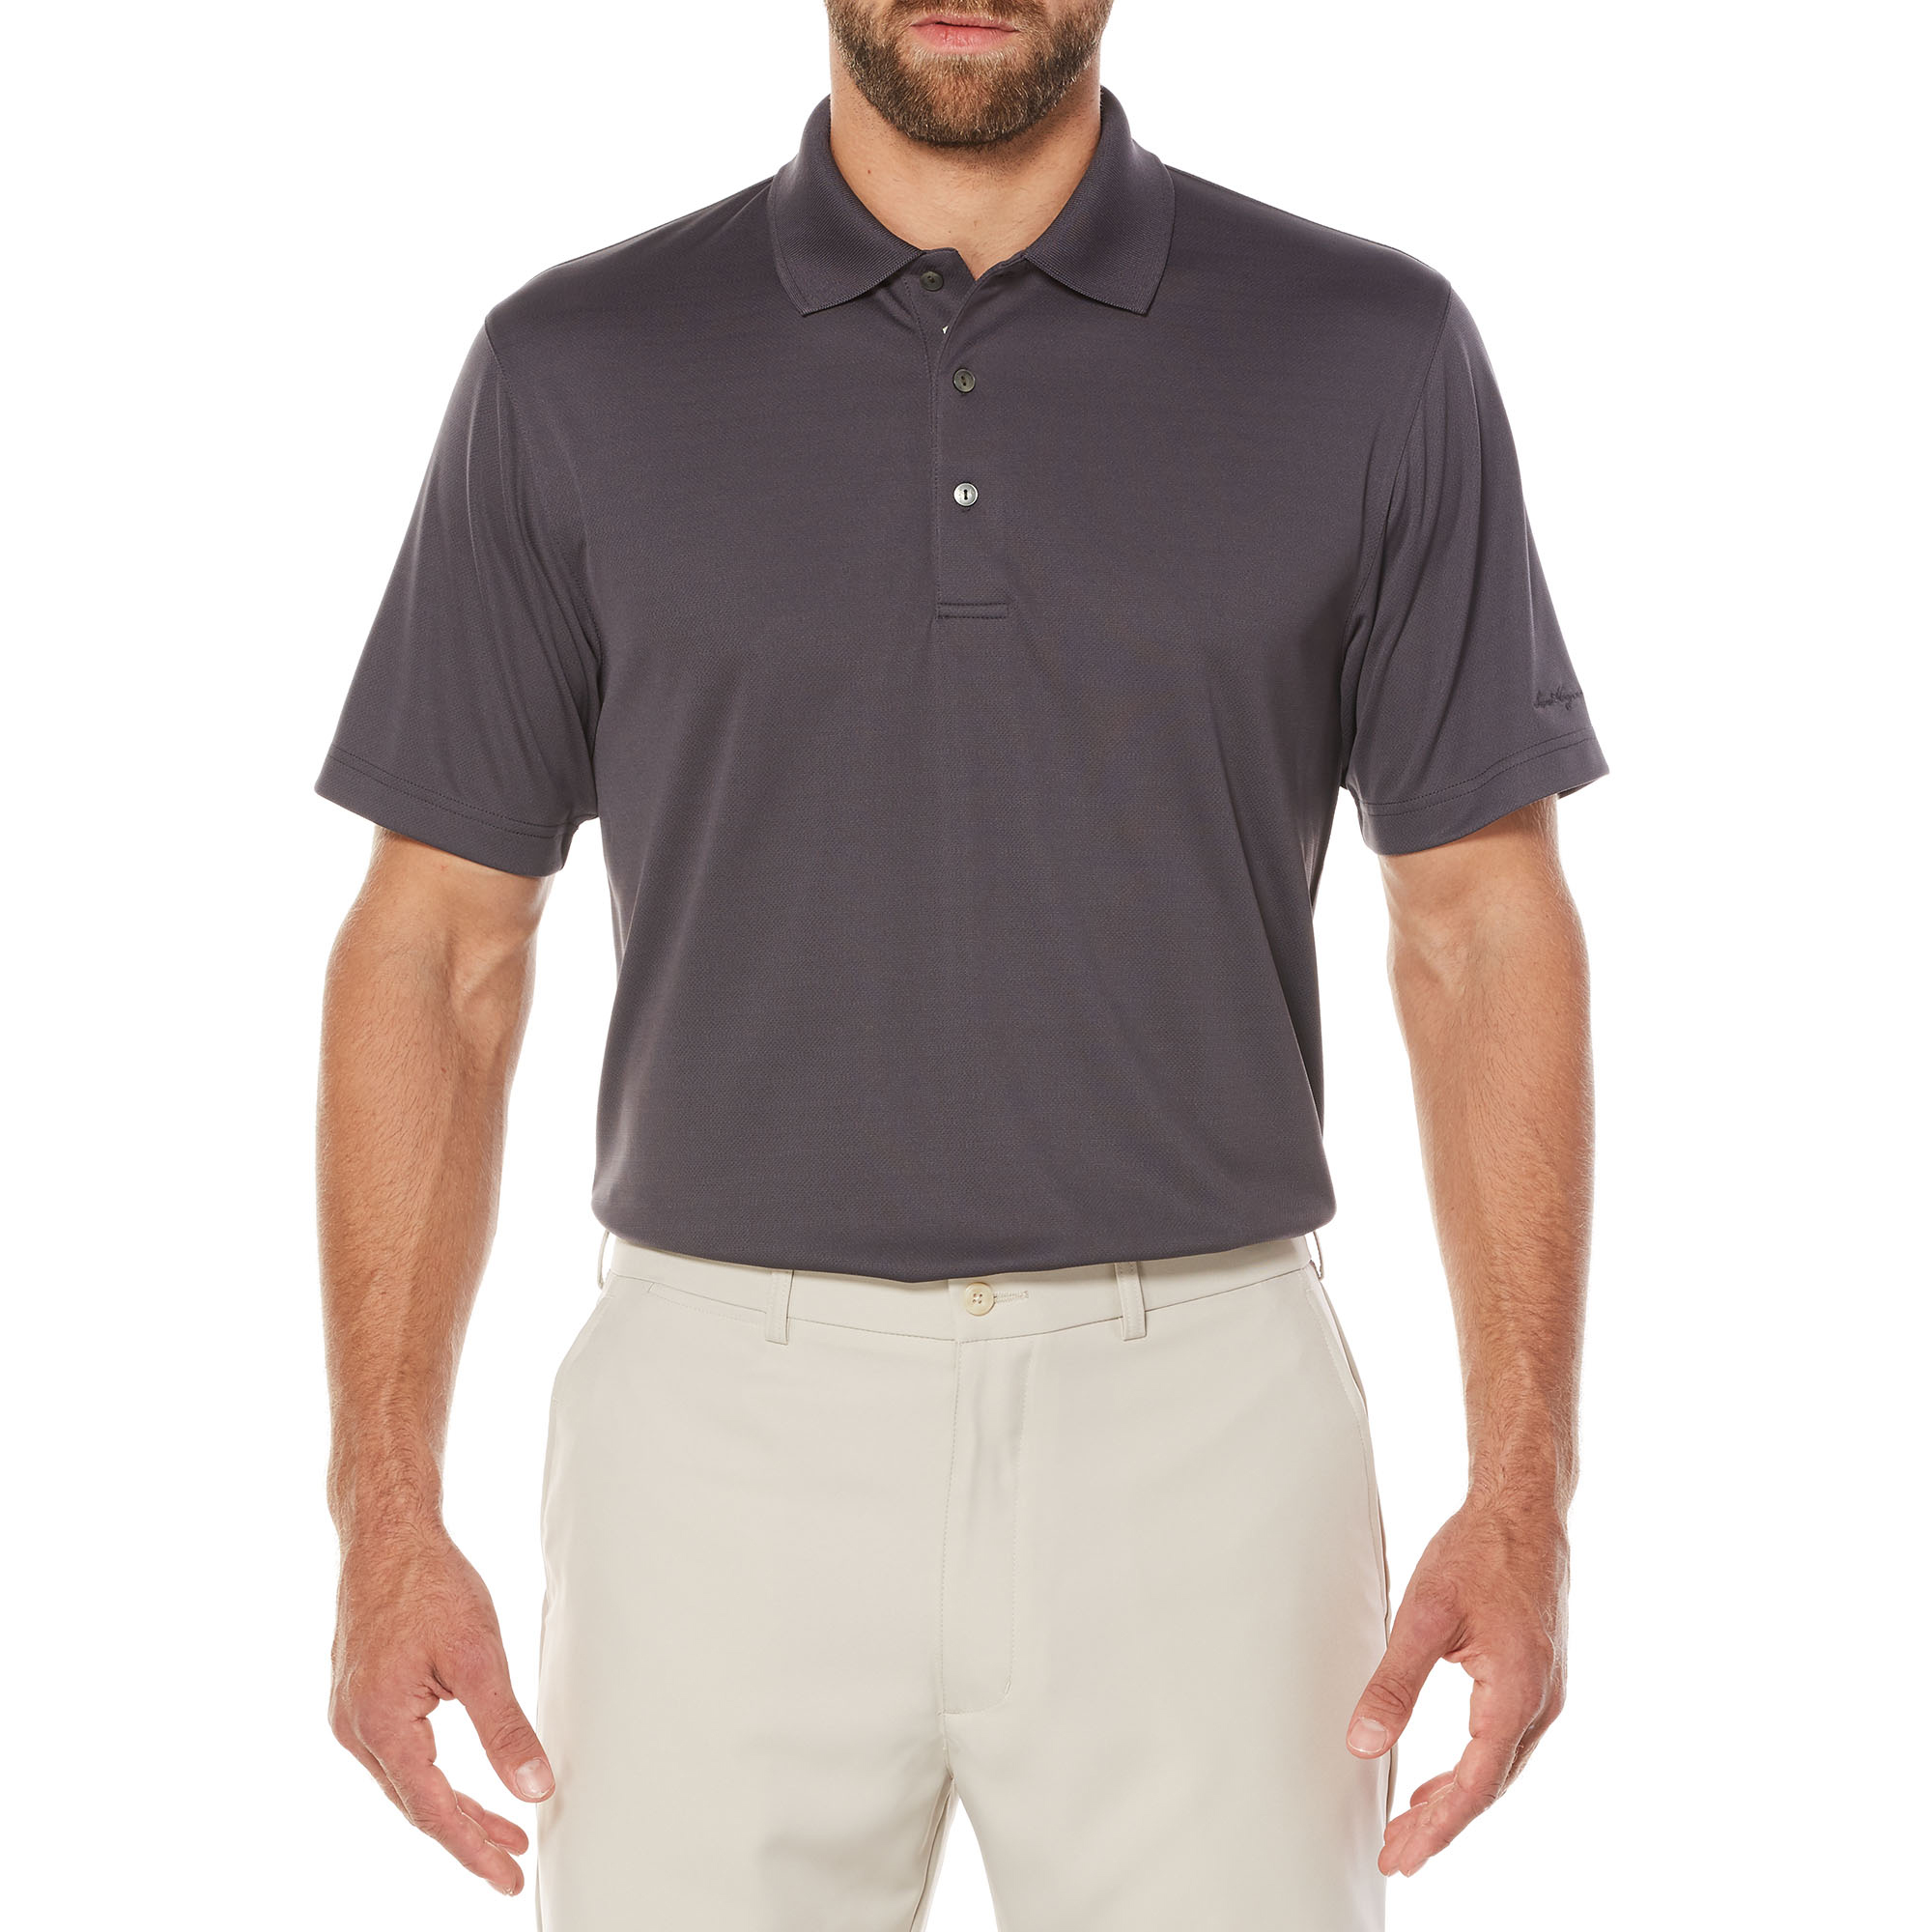 Men's Performance Short Sleeve Solid Golf Polo Shirt, up to size 5XL